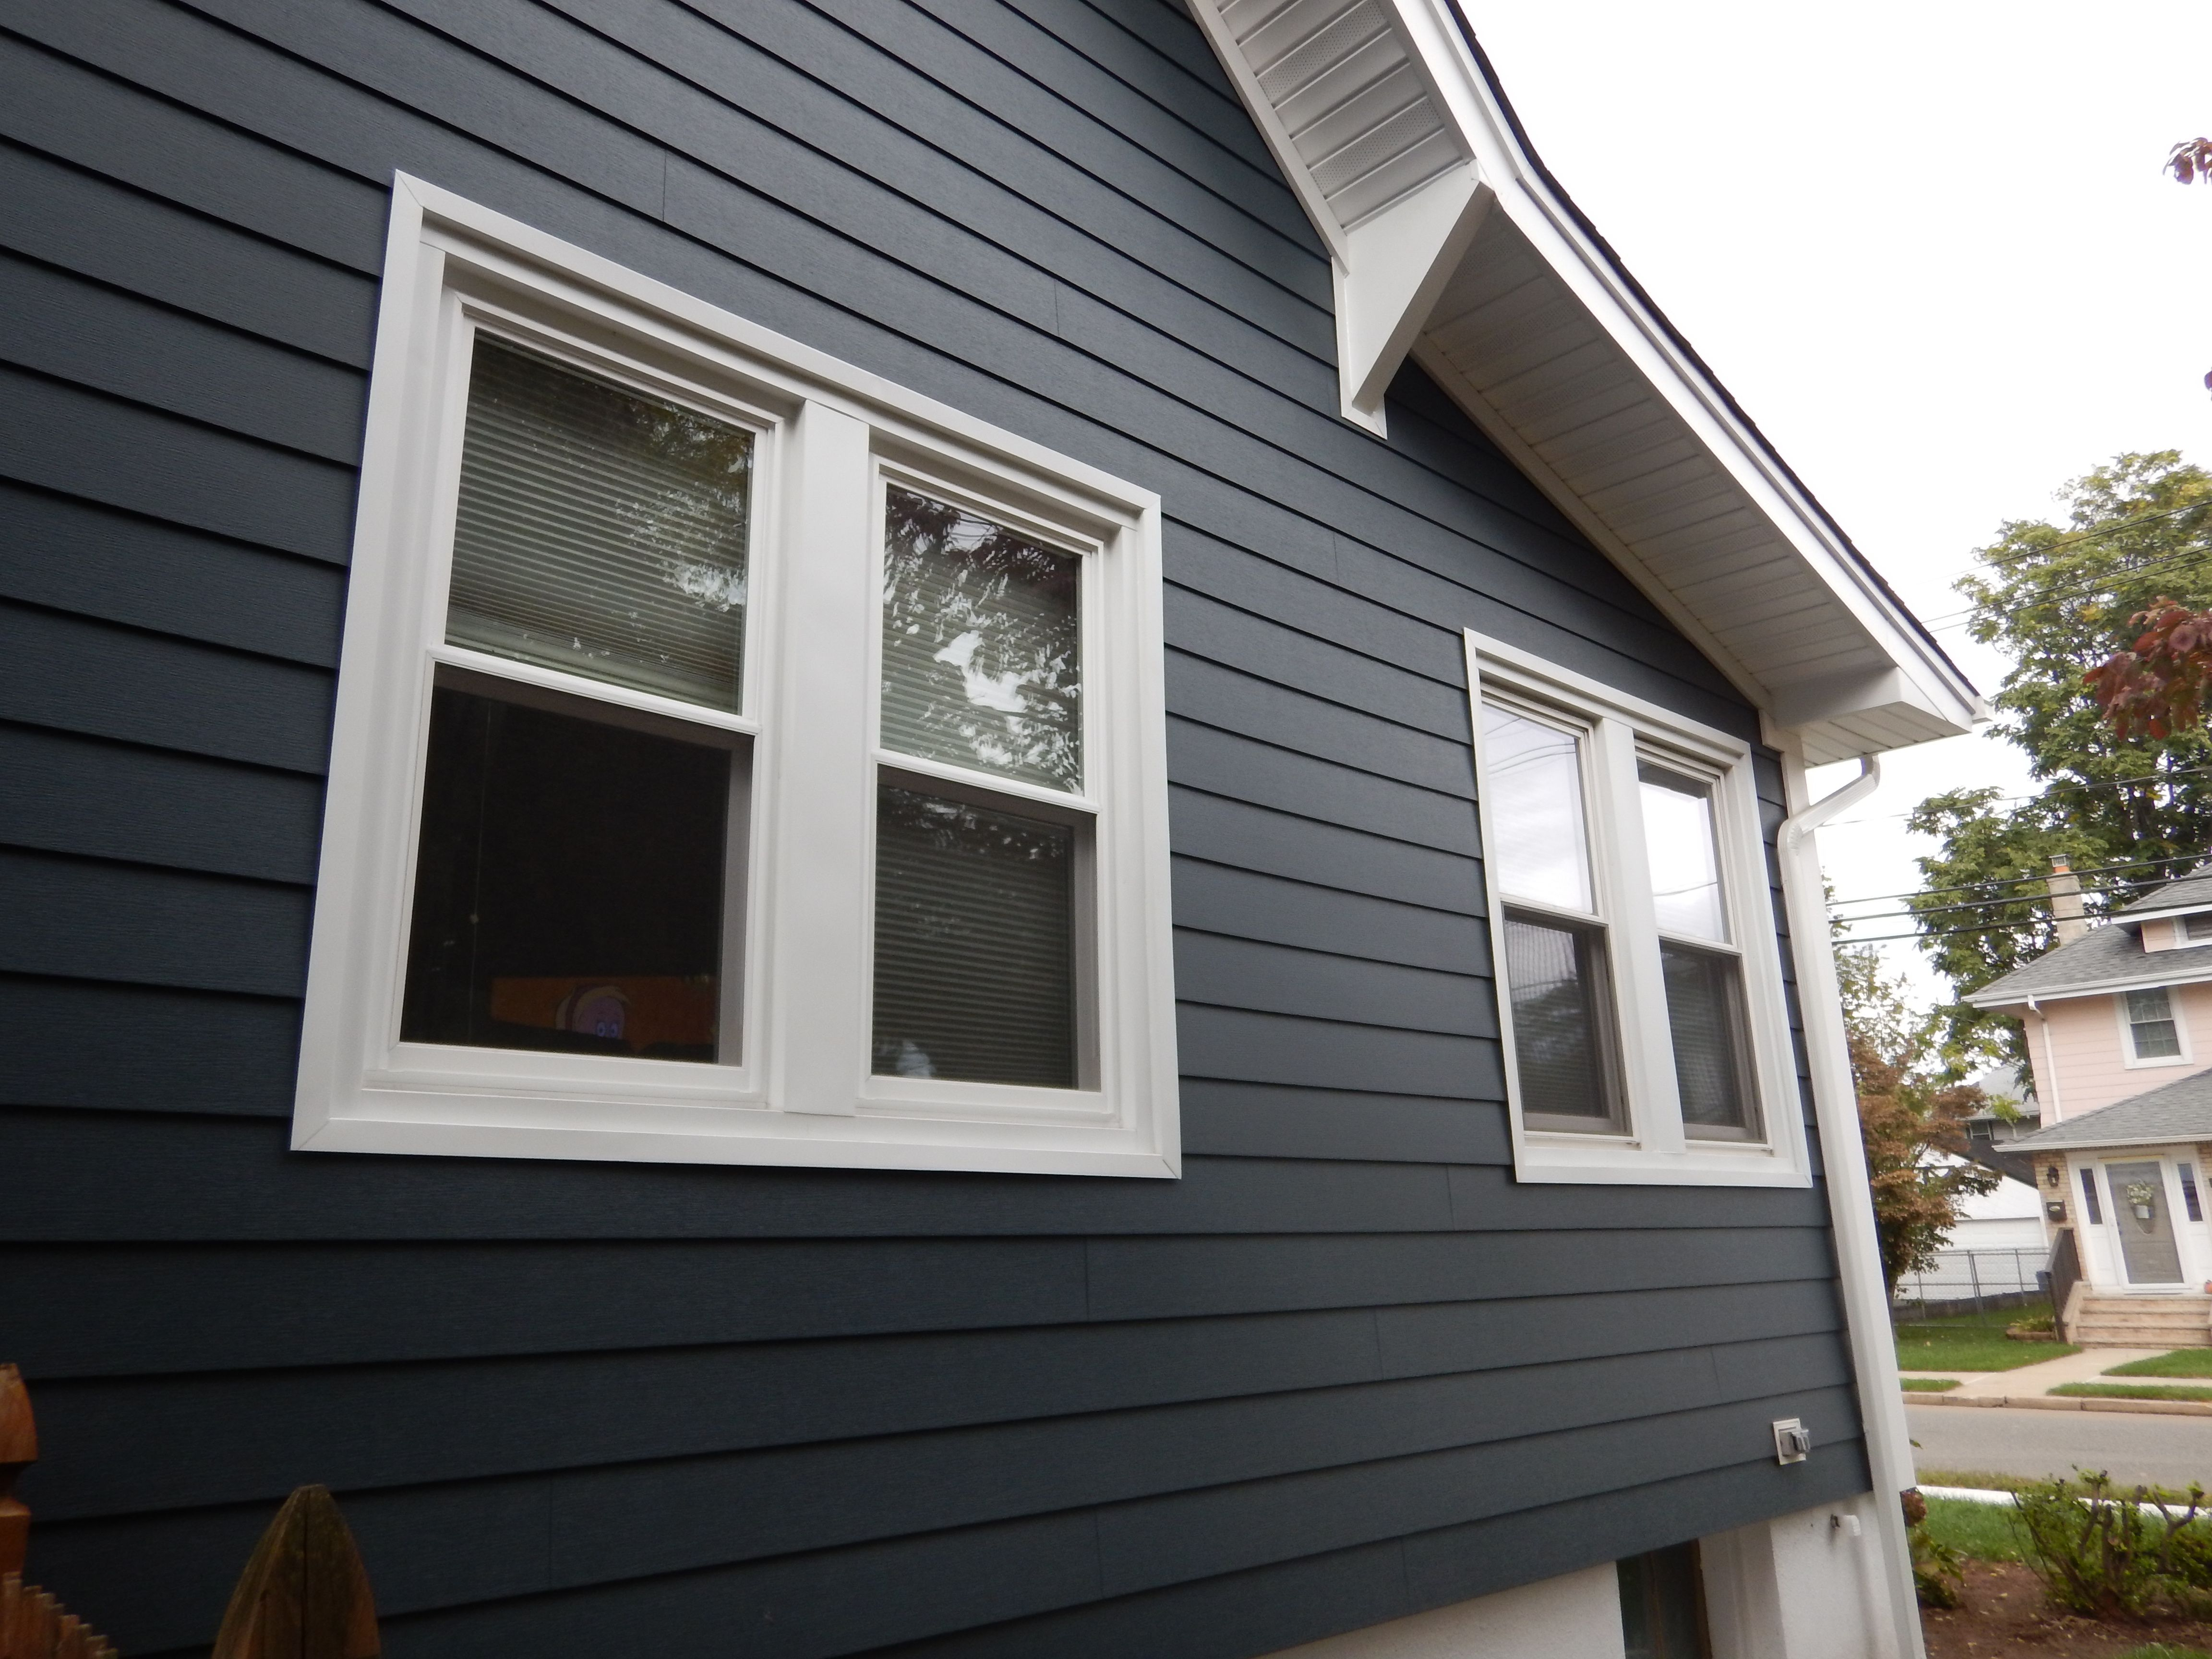 Beautiful Siding With Royal Celect Siding Around The Window An Norwood Vinyl Siding New